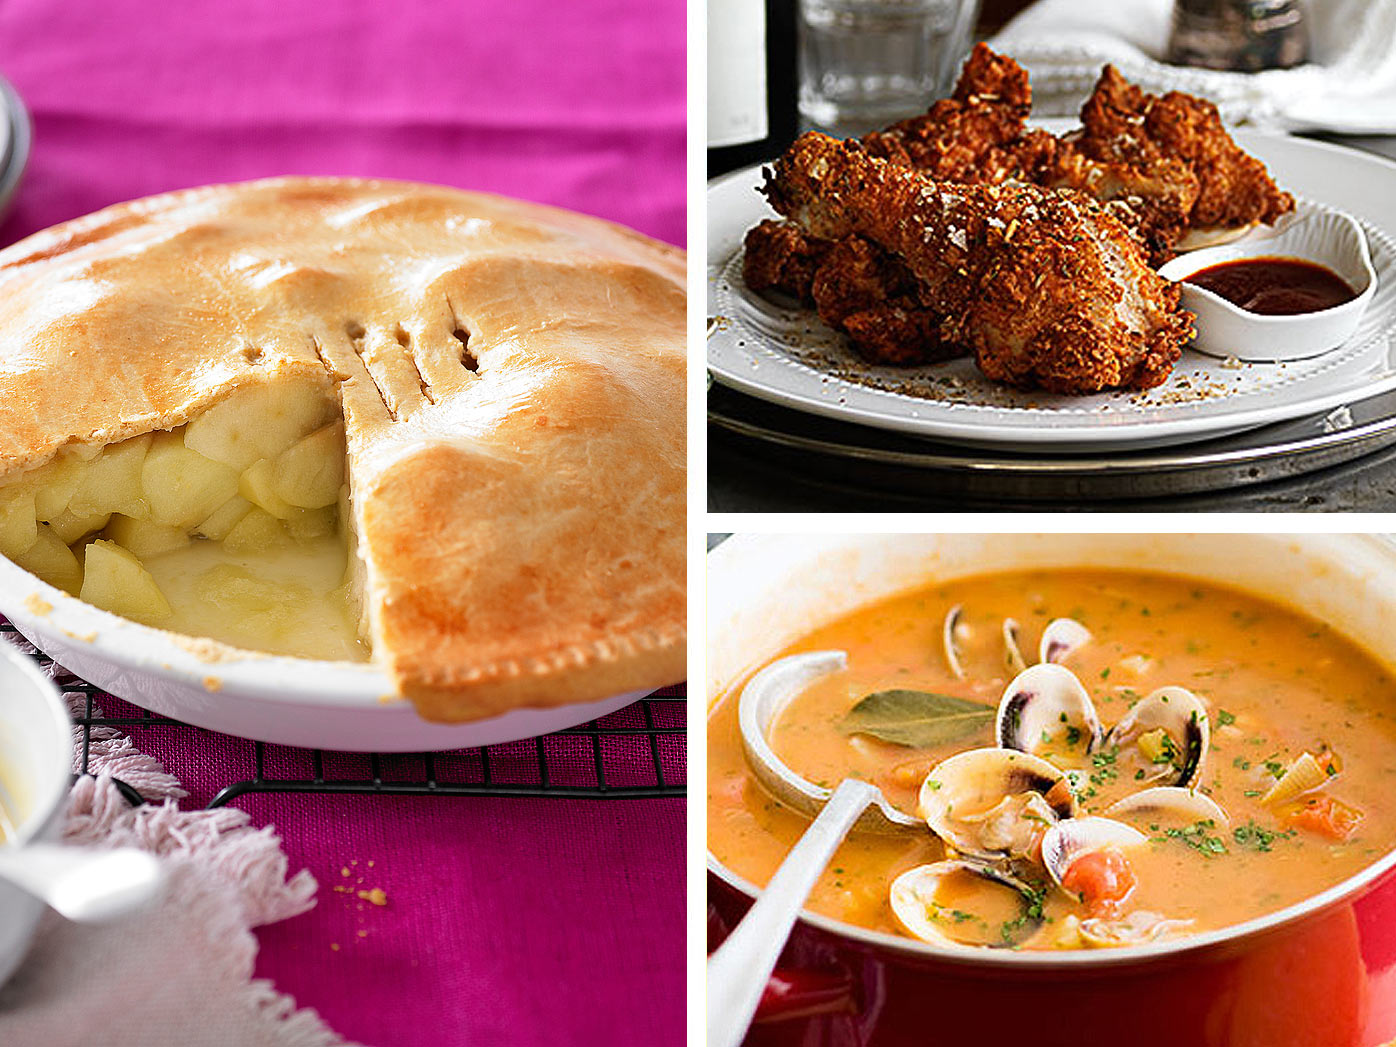 Southern chicken, clam chowder and apple pie